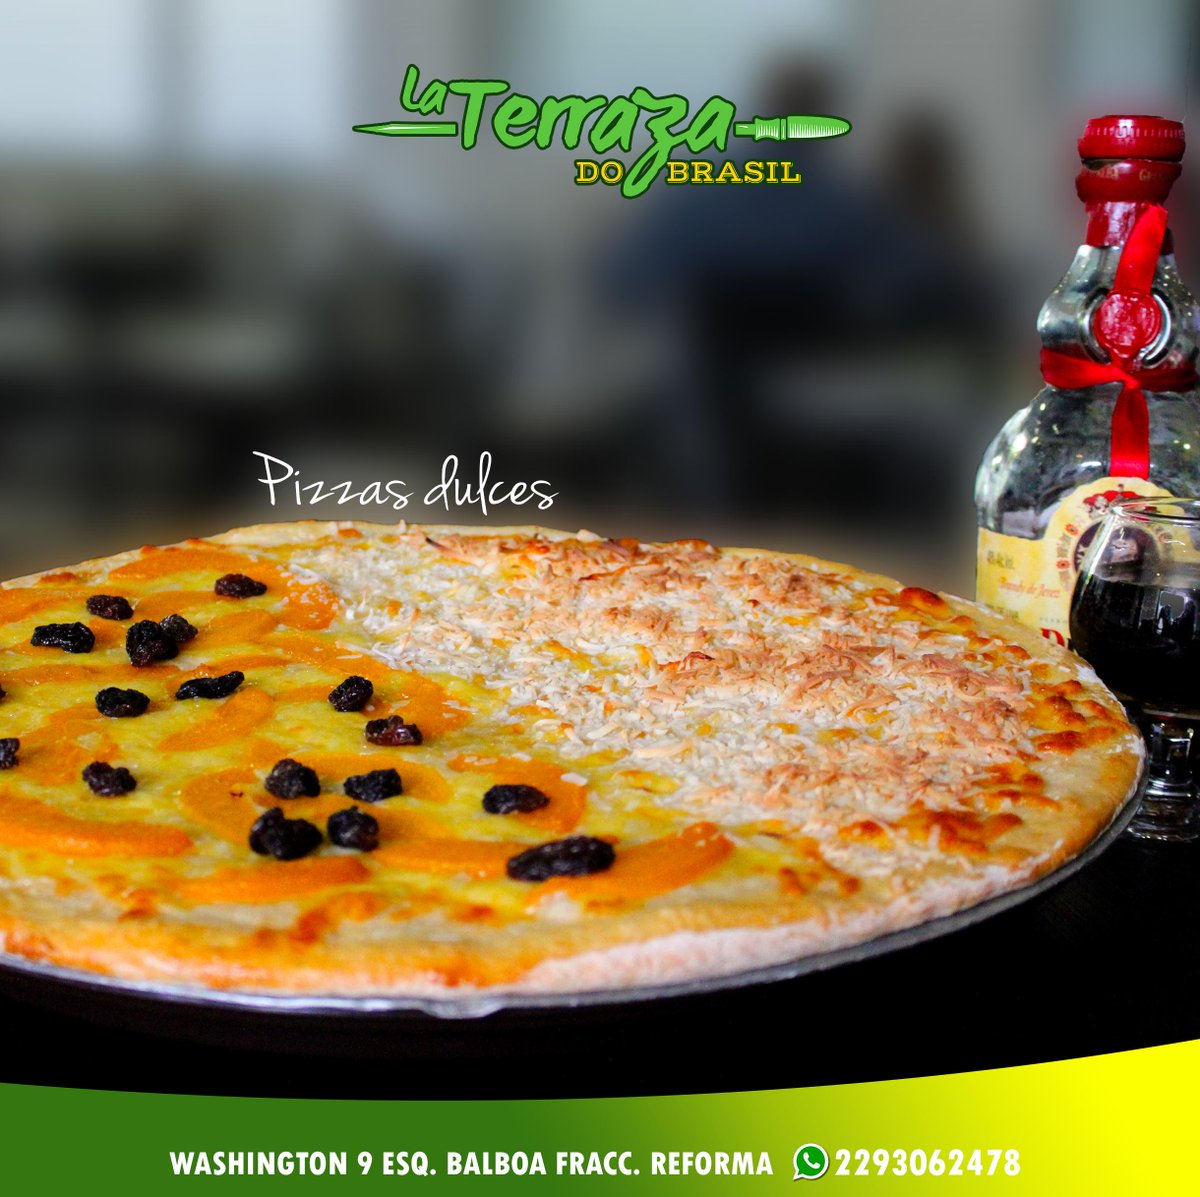 La Terraza Do Brasil On Twitter Las Pizzas Dulces Son La